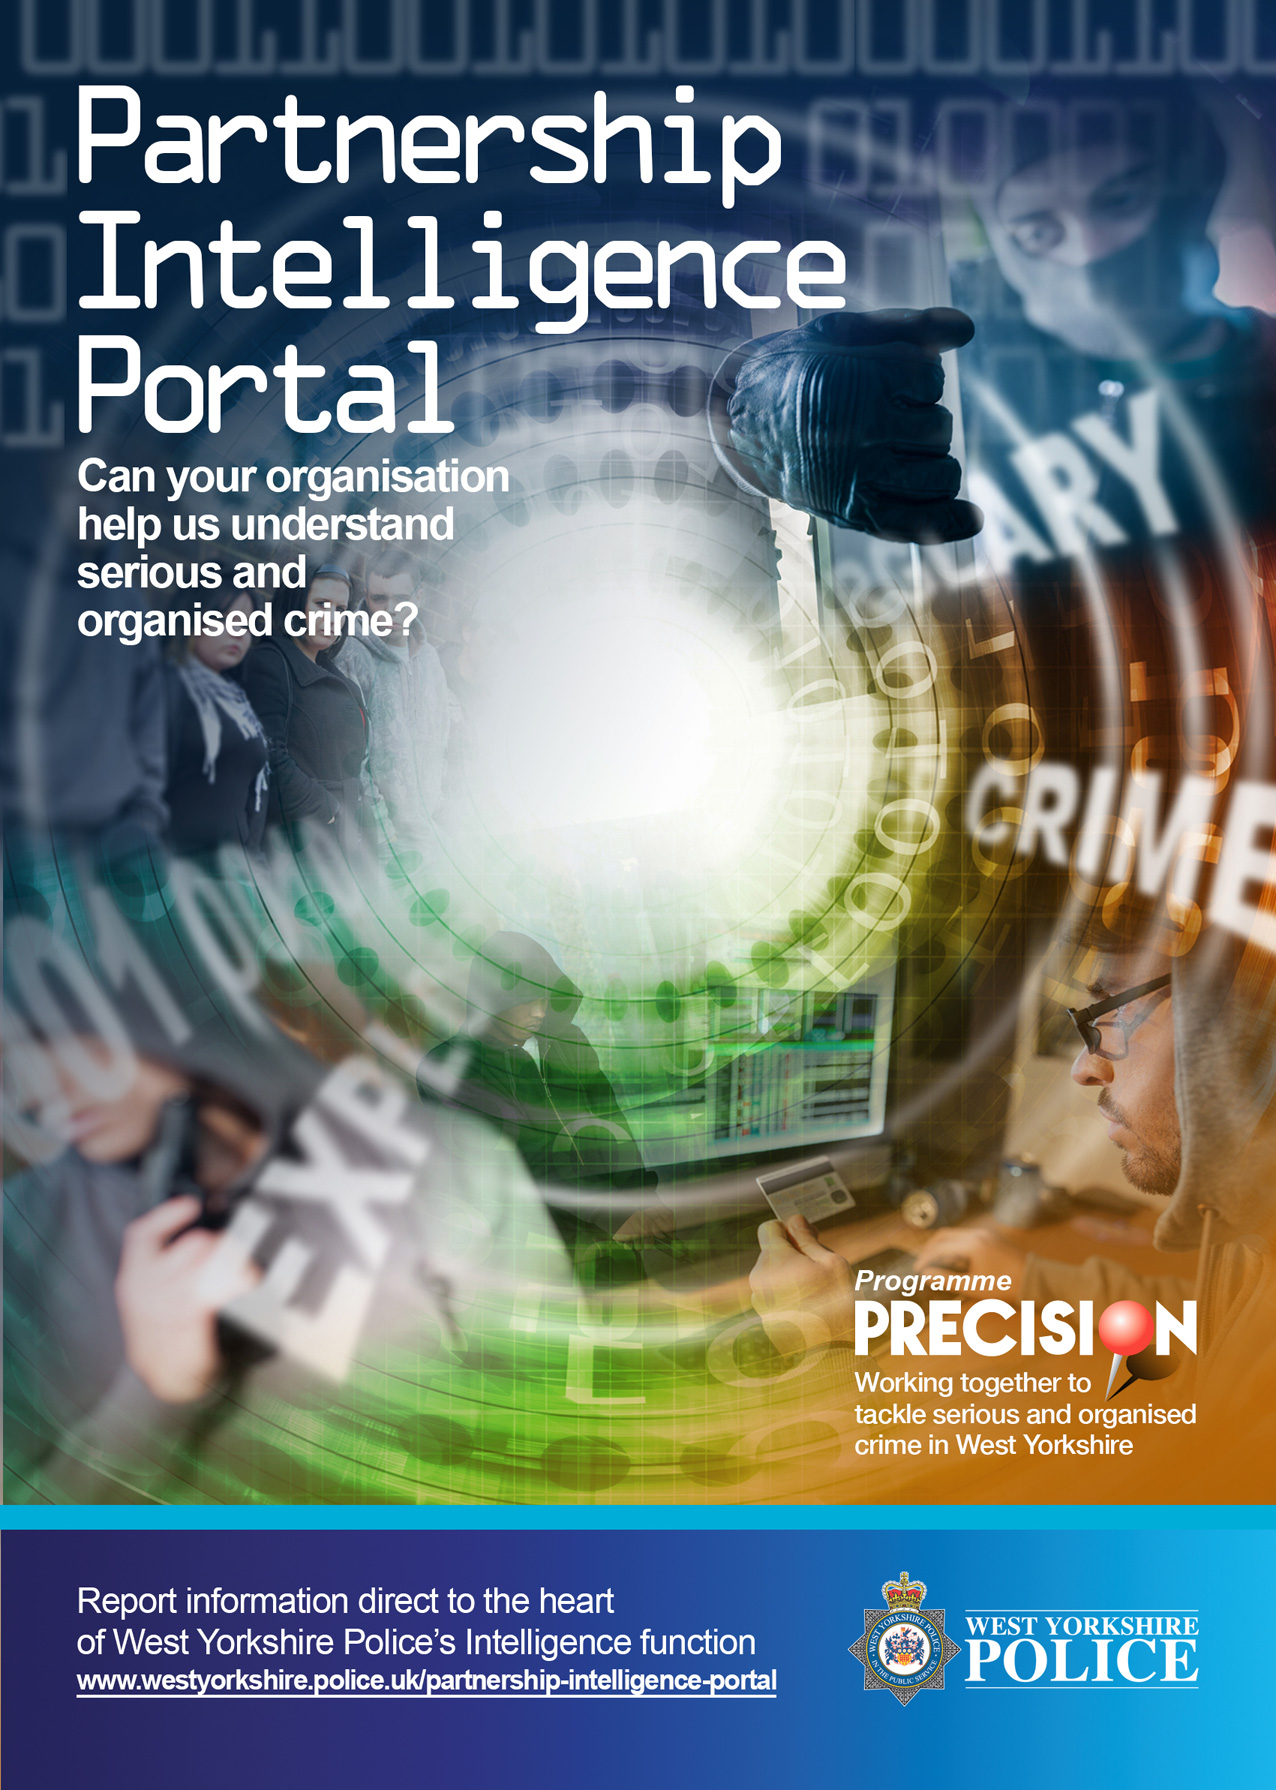 Partnership Intelligence Portal Poster